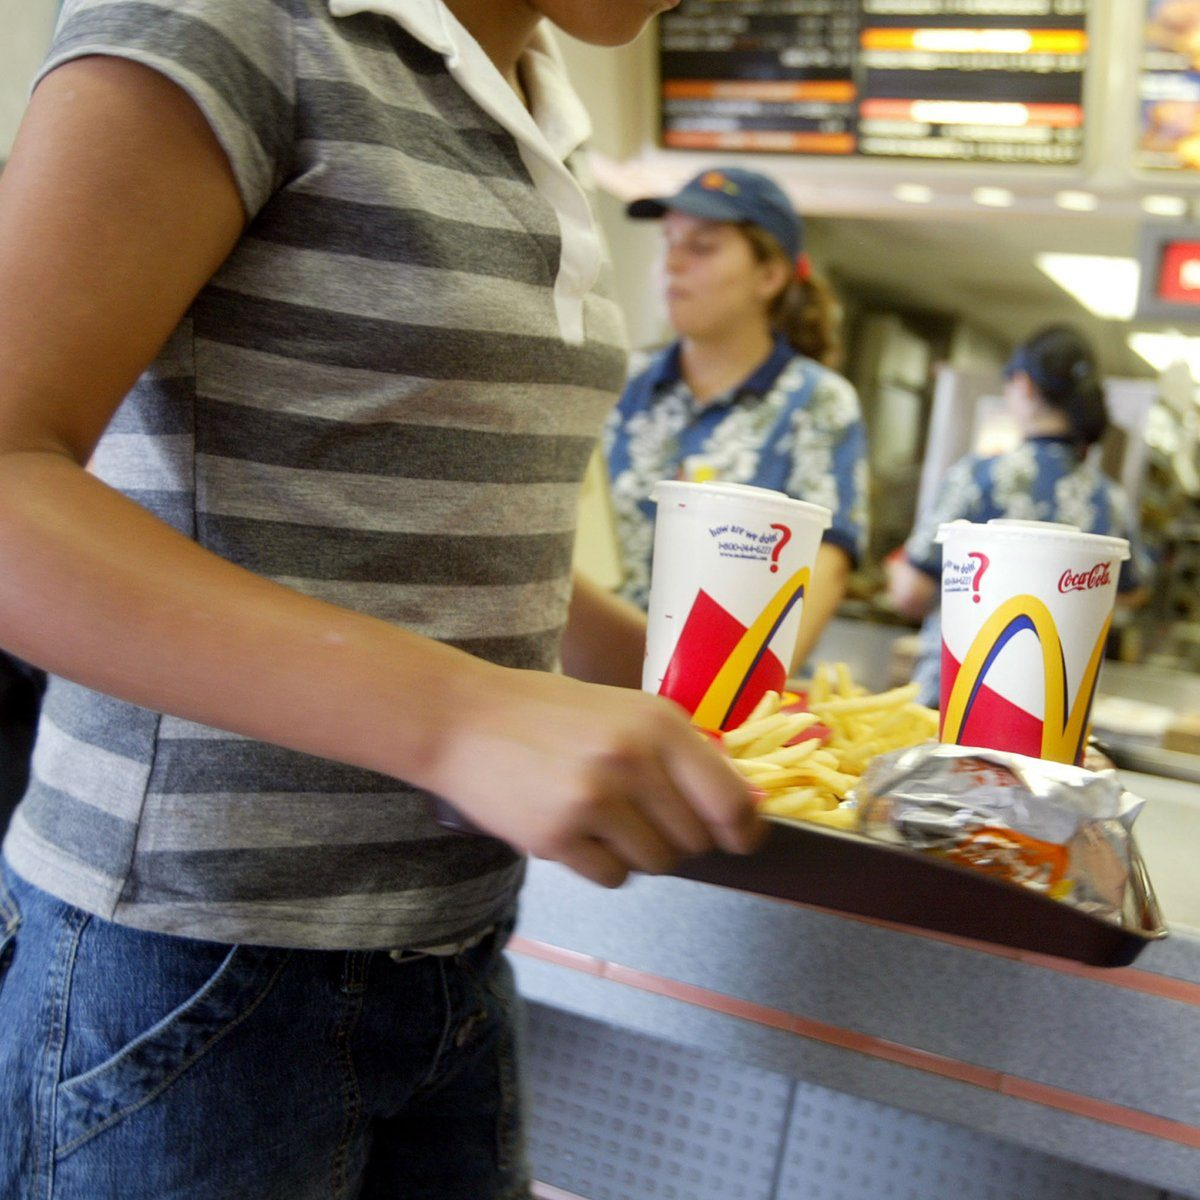 MIAMI, FL - JUNE 19: A customer carries a tray of food at McDonald's June 19, 2003 in Miami, Florida. News reports say that In response to warnings that use of antibiotics on U.S. farms is making the drugs less effective for treating people, the fast-food chain is directing some meat suppliers to stop using antibiotic growth promoters altogether and encouraging others to cut back. (Photo by Joe Raedle/Getty Images)